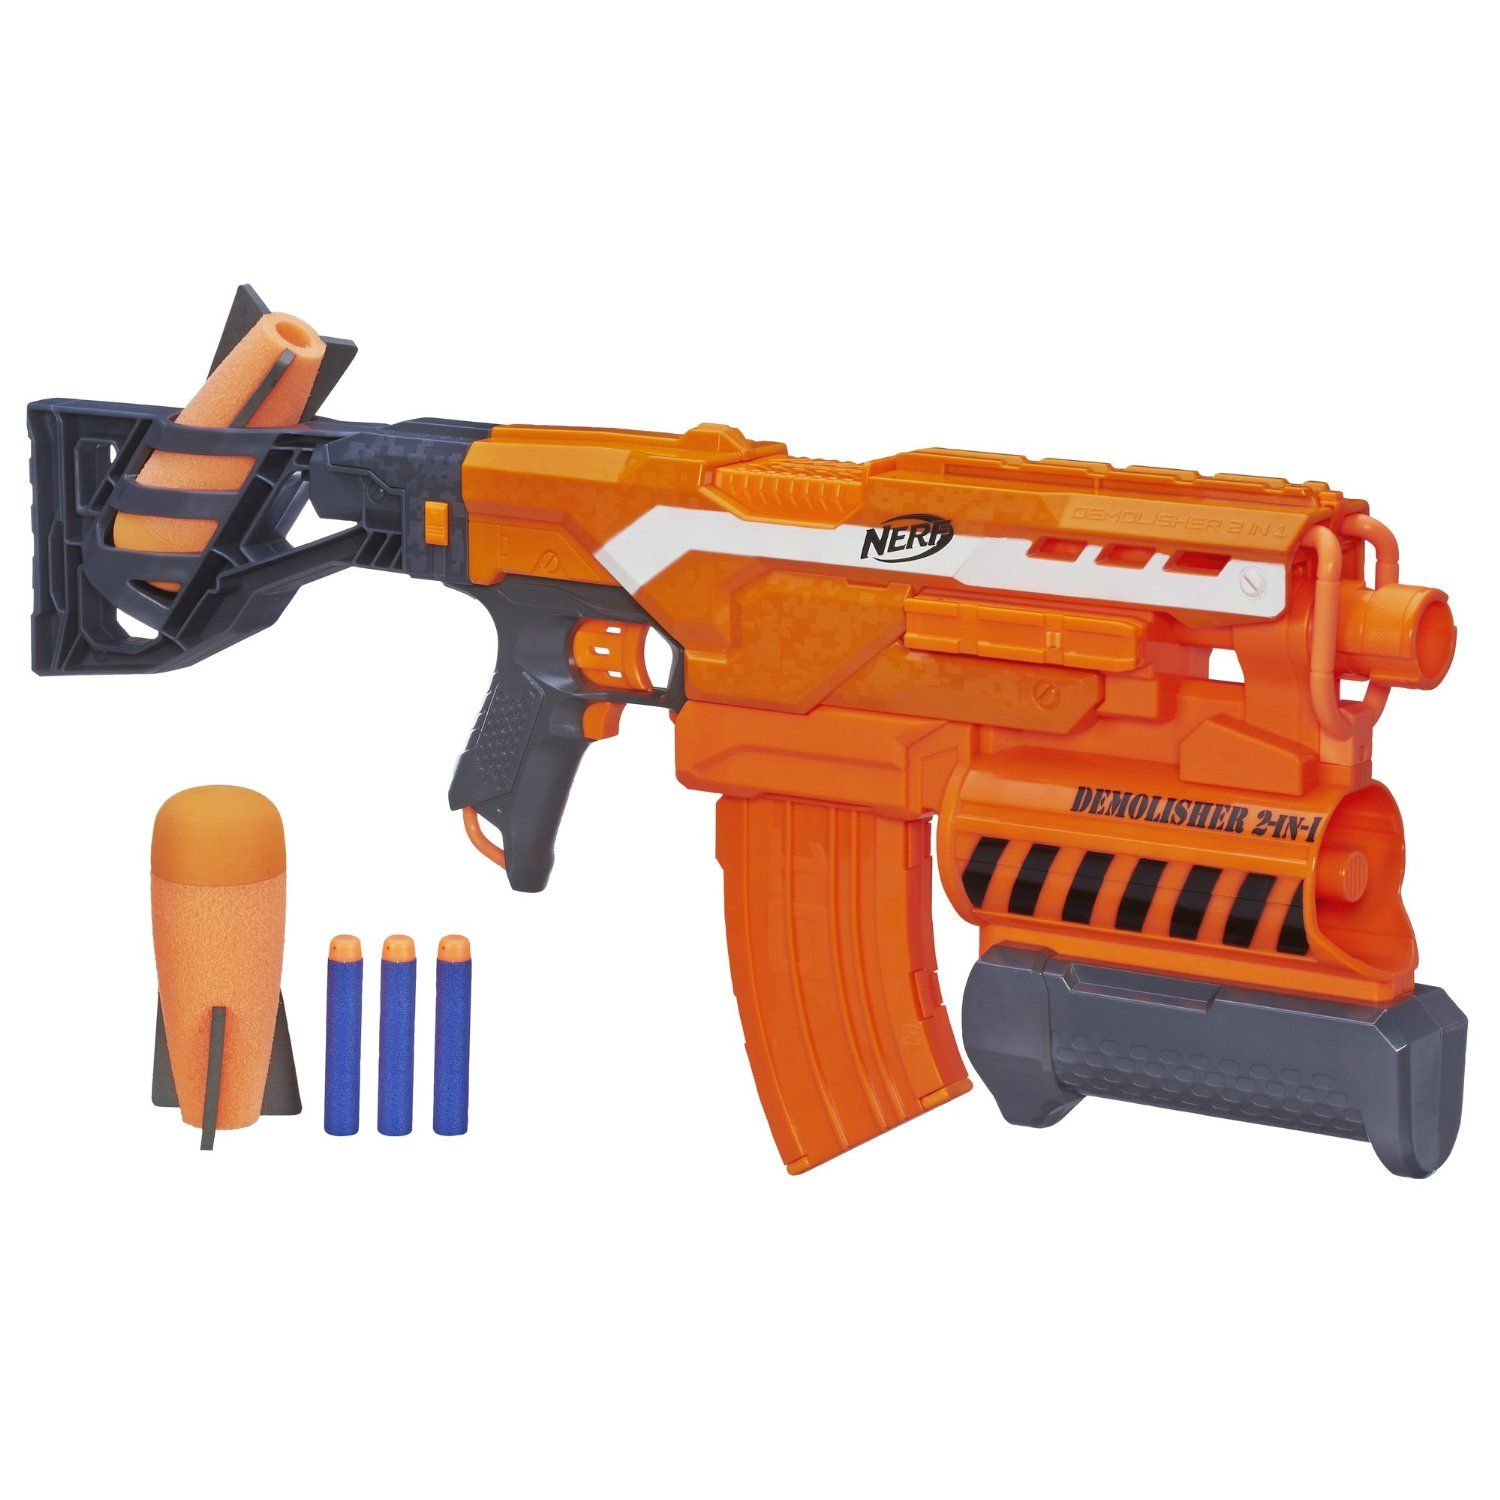 Nice Top 10 Best Nerf Guns For Kids in 2016 Reviews